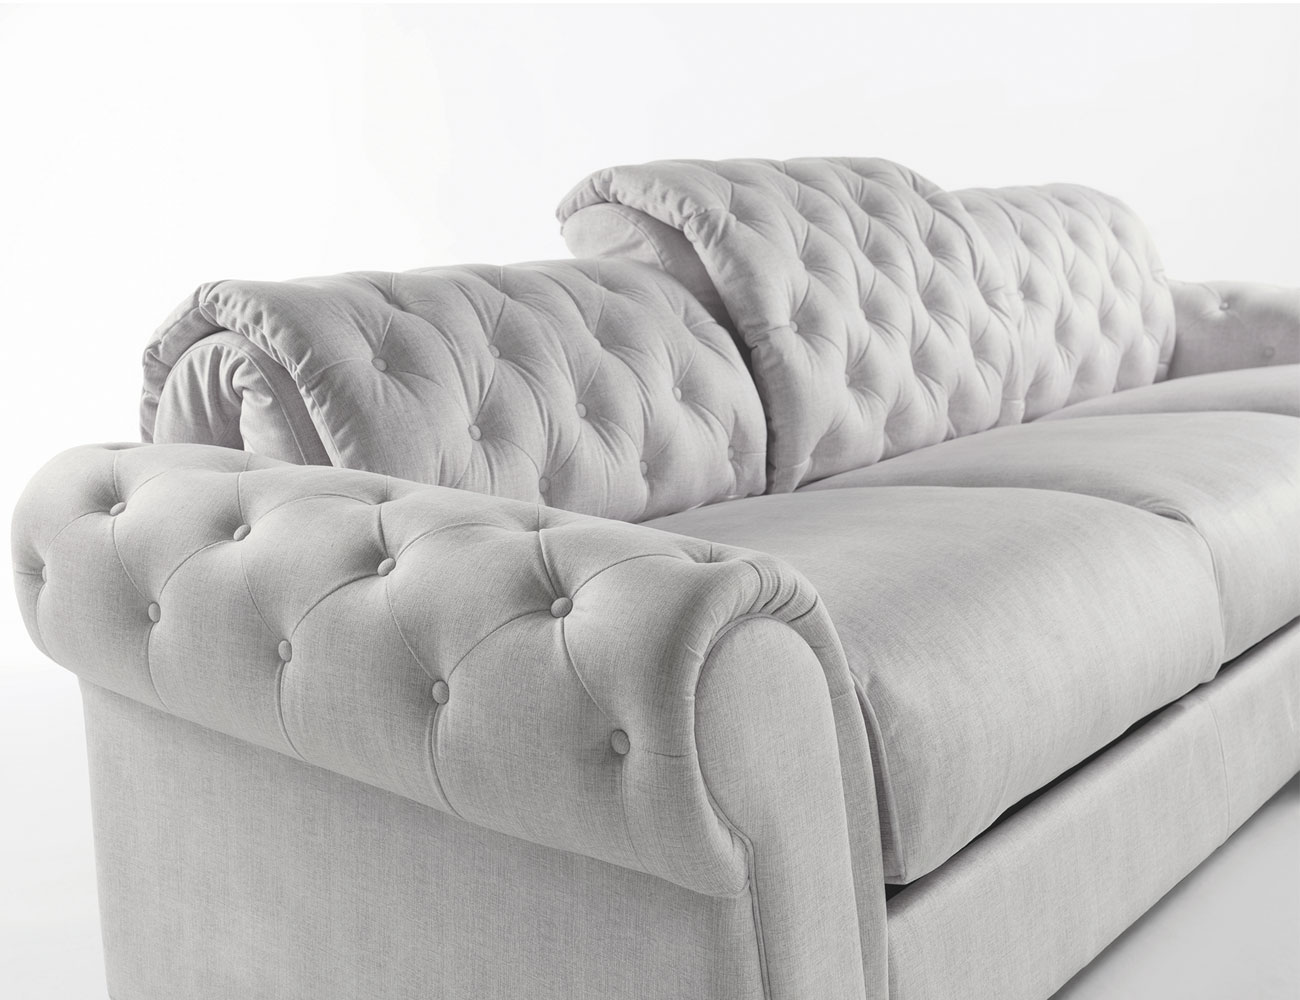 Sofa chaiselongue gran lujo decorativo capitone blanco tela 153